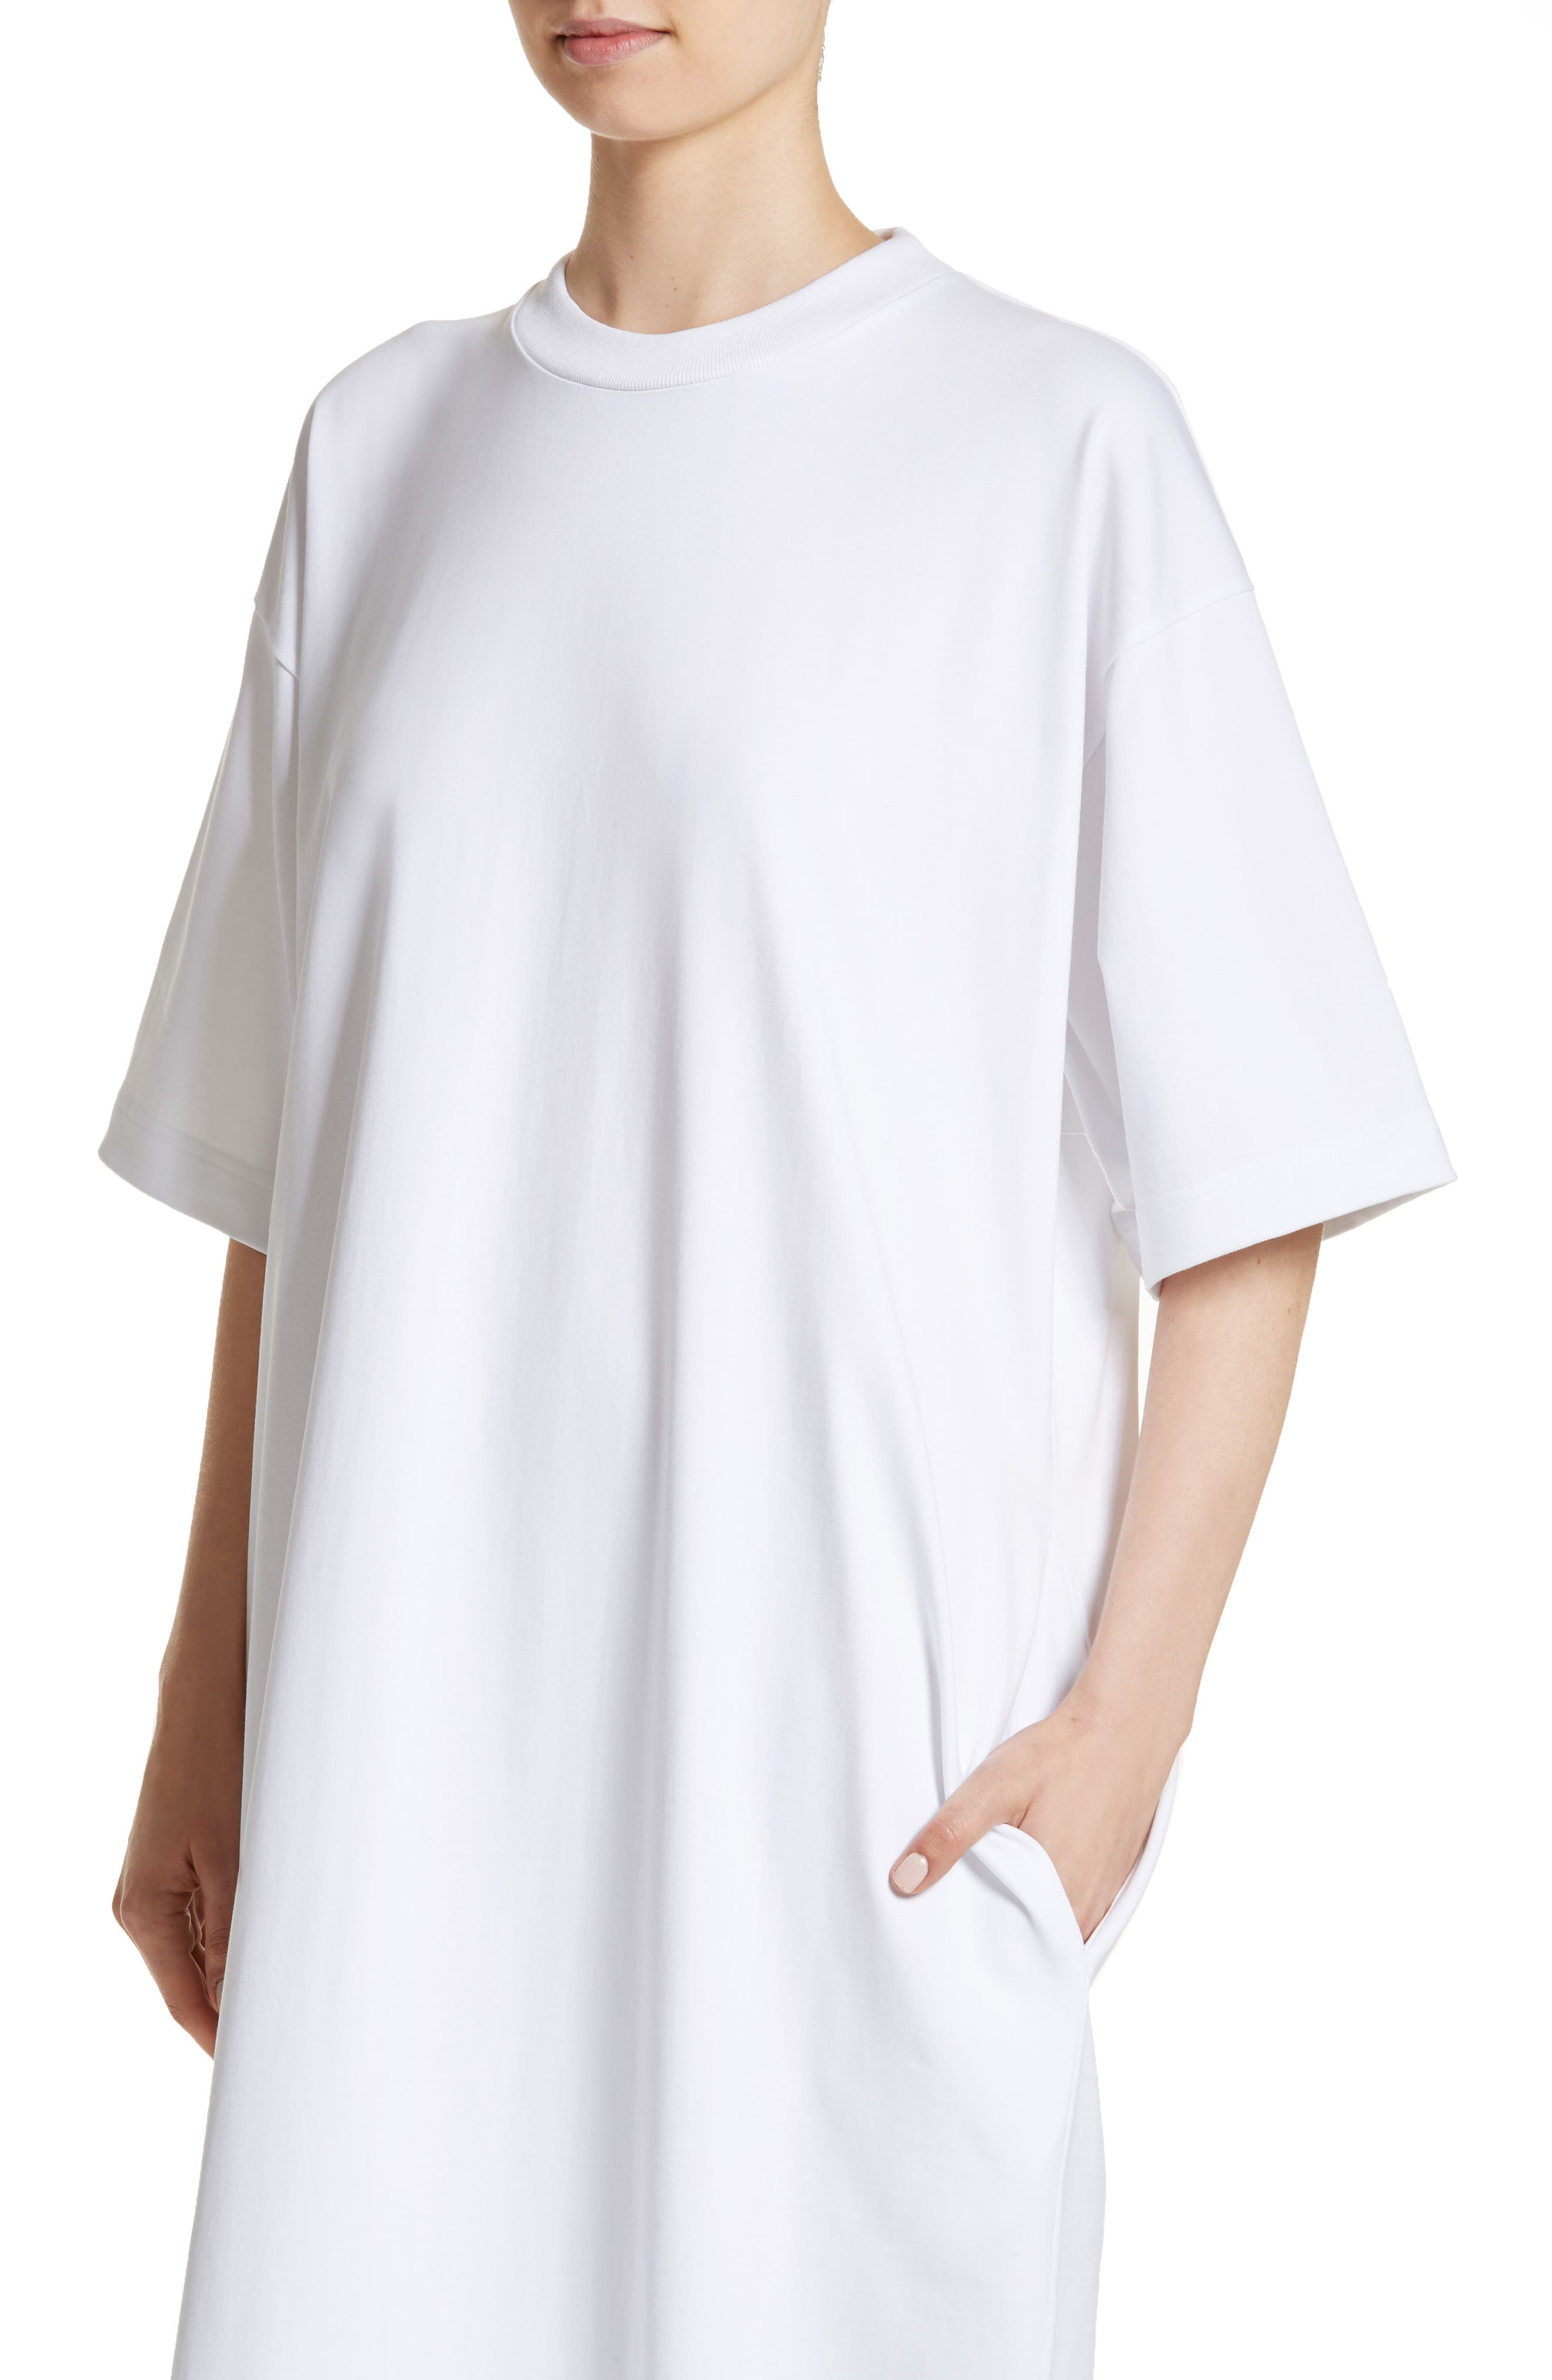 T-Shirt Dress,                             Alternate thumbnail 4, color,                             White